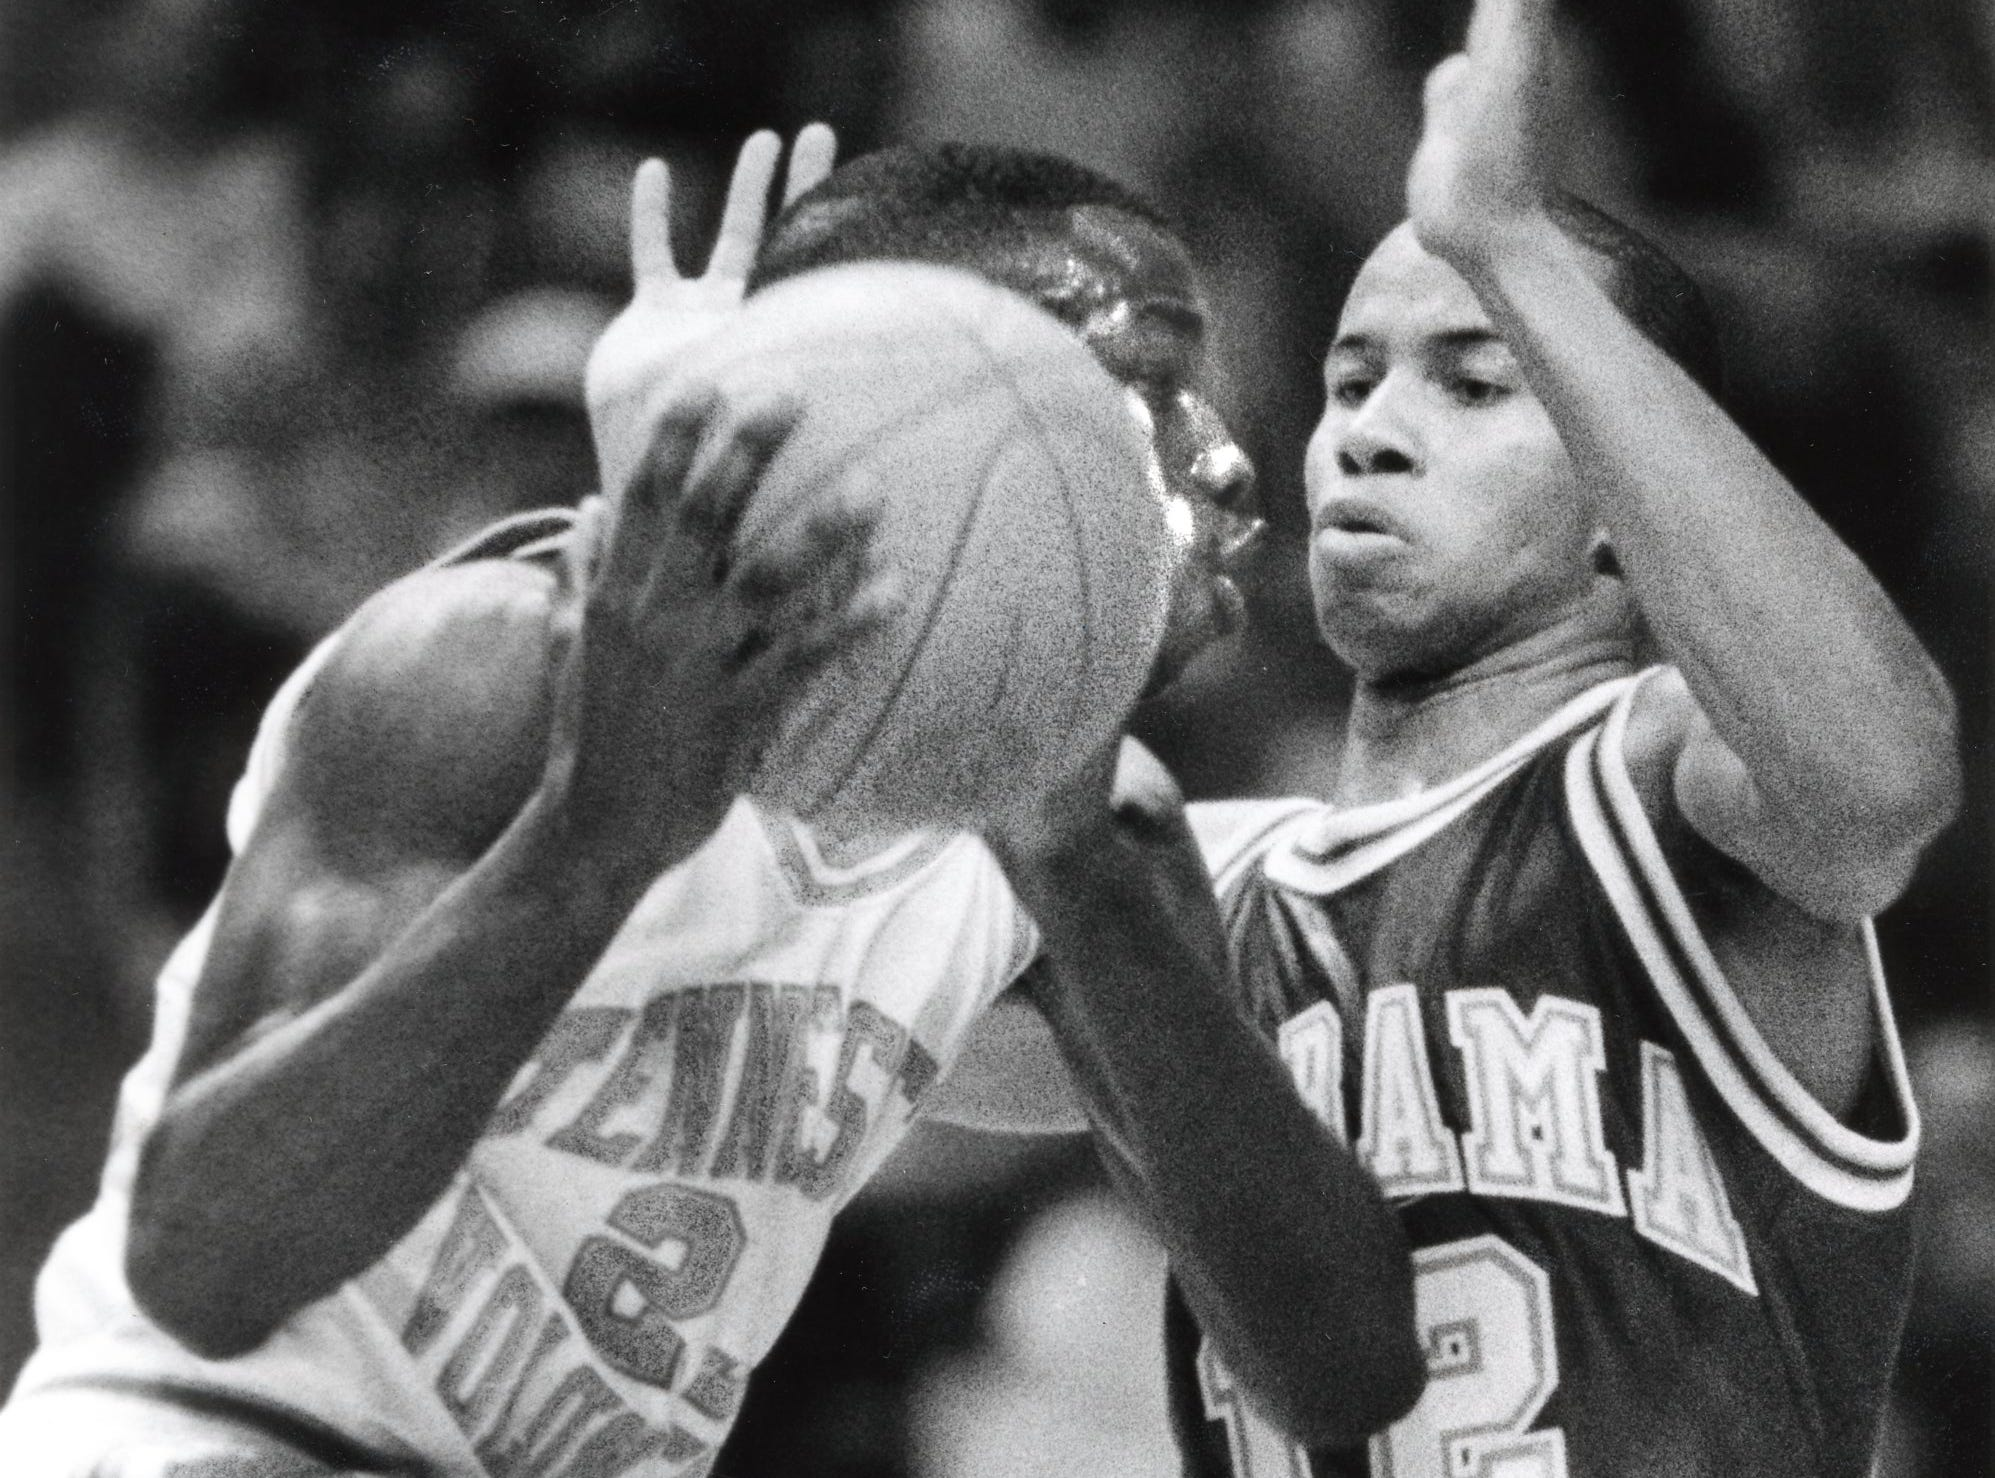 Alabama's Gary Waites sticks closely to Tennessee's Greg Bell during a game in February 1989.